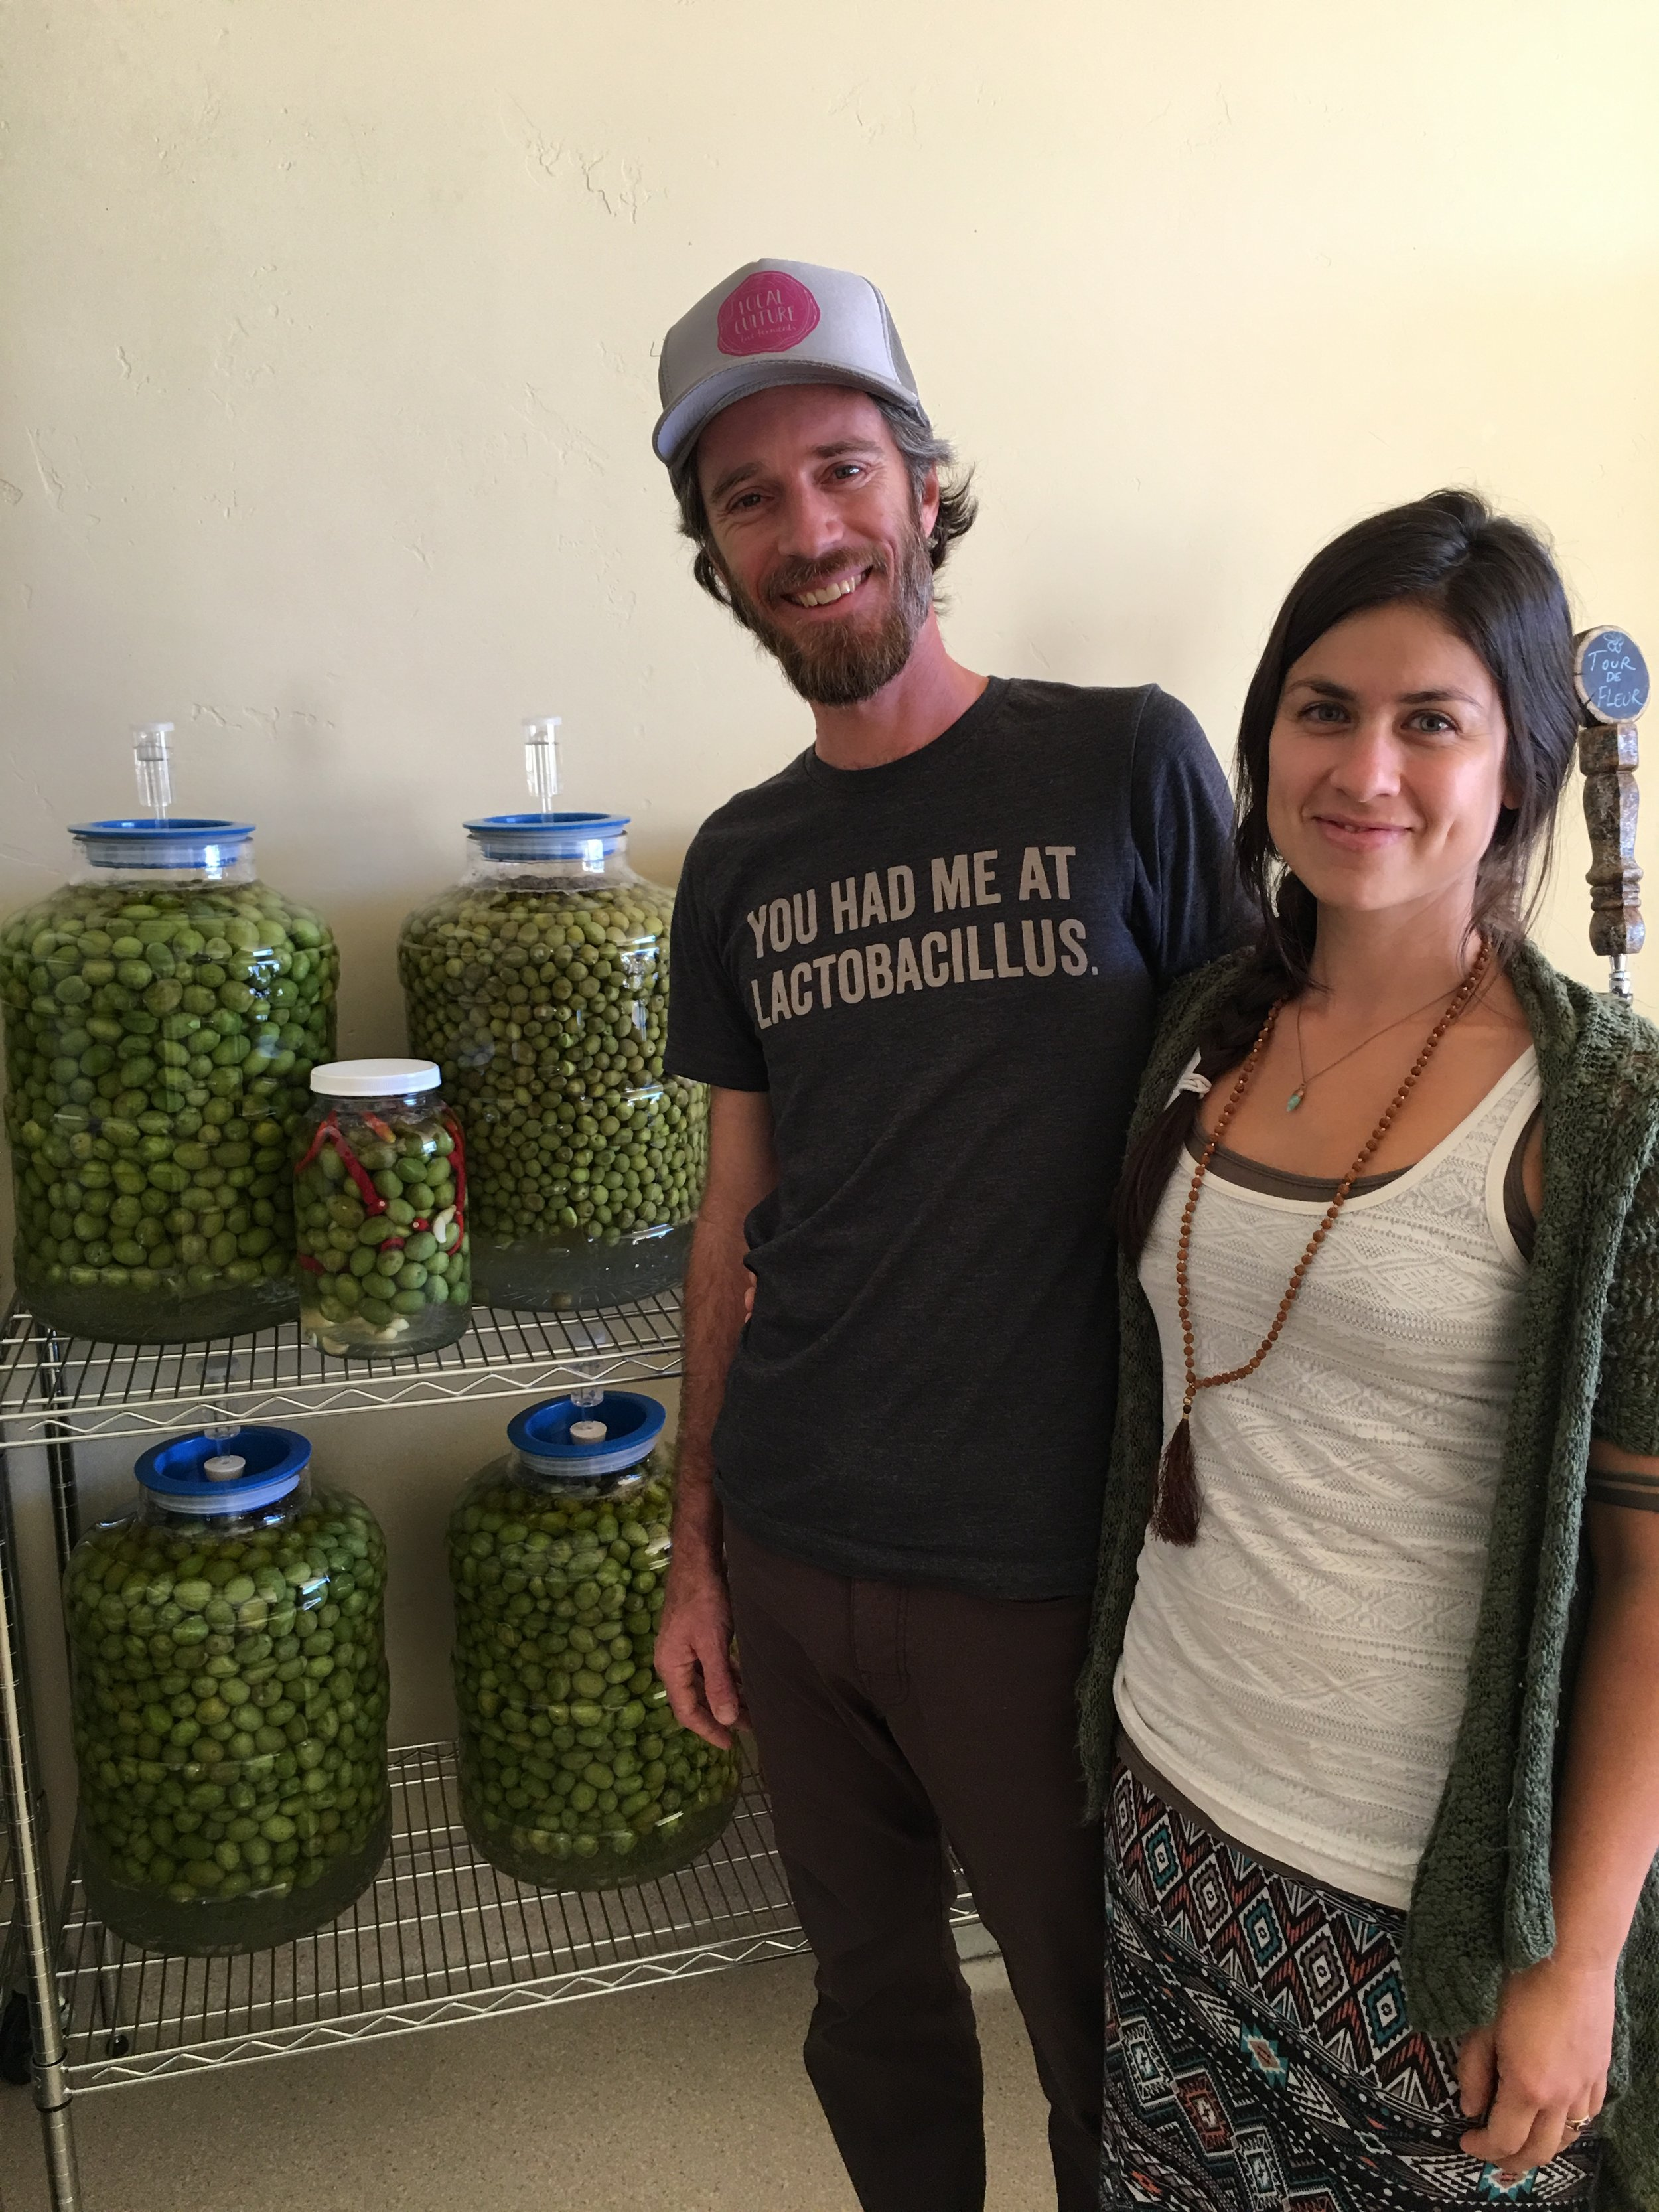 The brine is fine: Local Culture Live Foods Market opens in downtown Grass Valley - Cristina Africano and Chris Frost-McKee think people would be happier if they ate a little bit of sauerkraut each day.For the last 15 years or so, Frost-McKee has been a firm believer in the benefits of kraut, a fascination that carried over to his family, who decided to start marketing their fermented foods in hopes of educating the public on the advantageous qualities they possess.